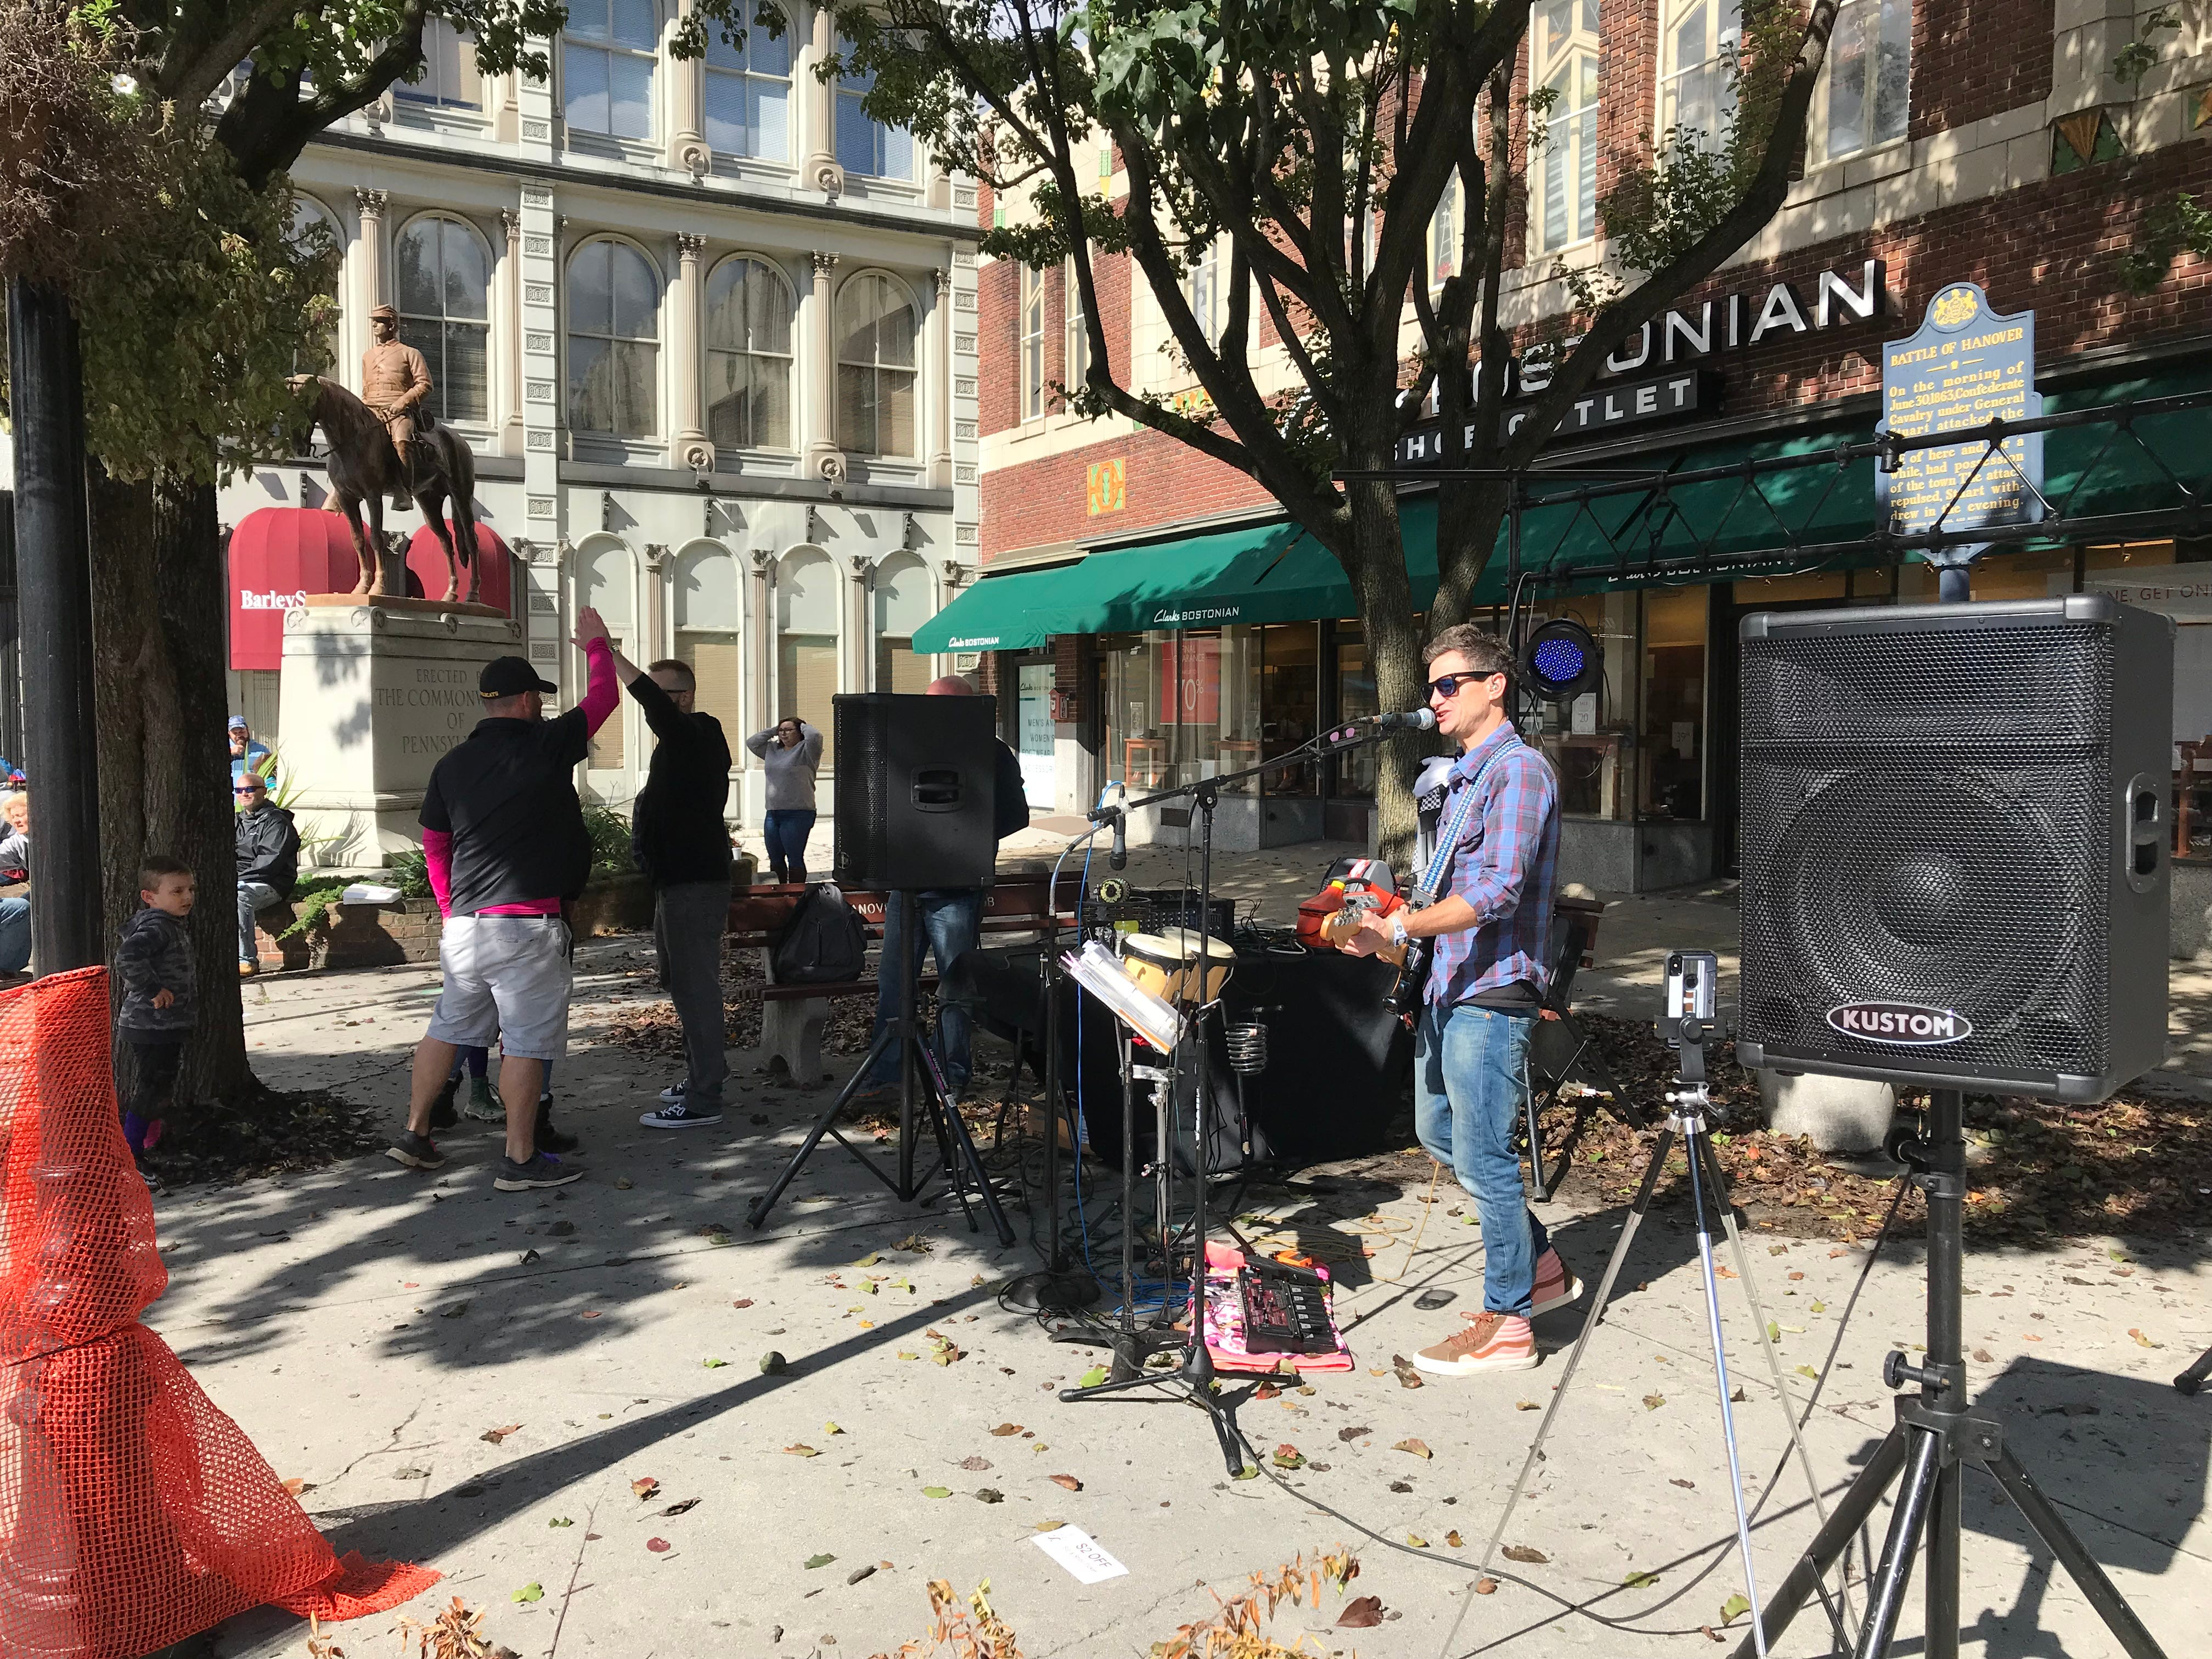 Downtown Hanover businesses and vendors pair up to offer area beers and ciders in the Fall Sip & Stroll, hosted by Main Street Hanover on Saturday, October 13, 2018.